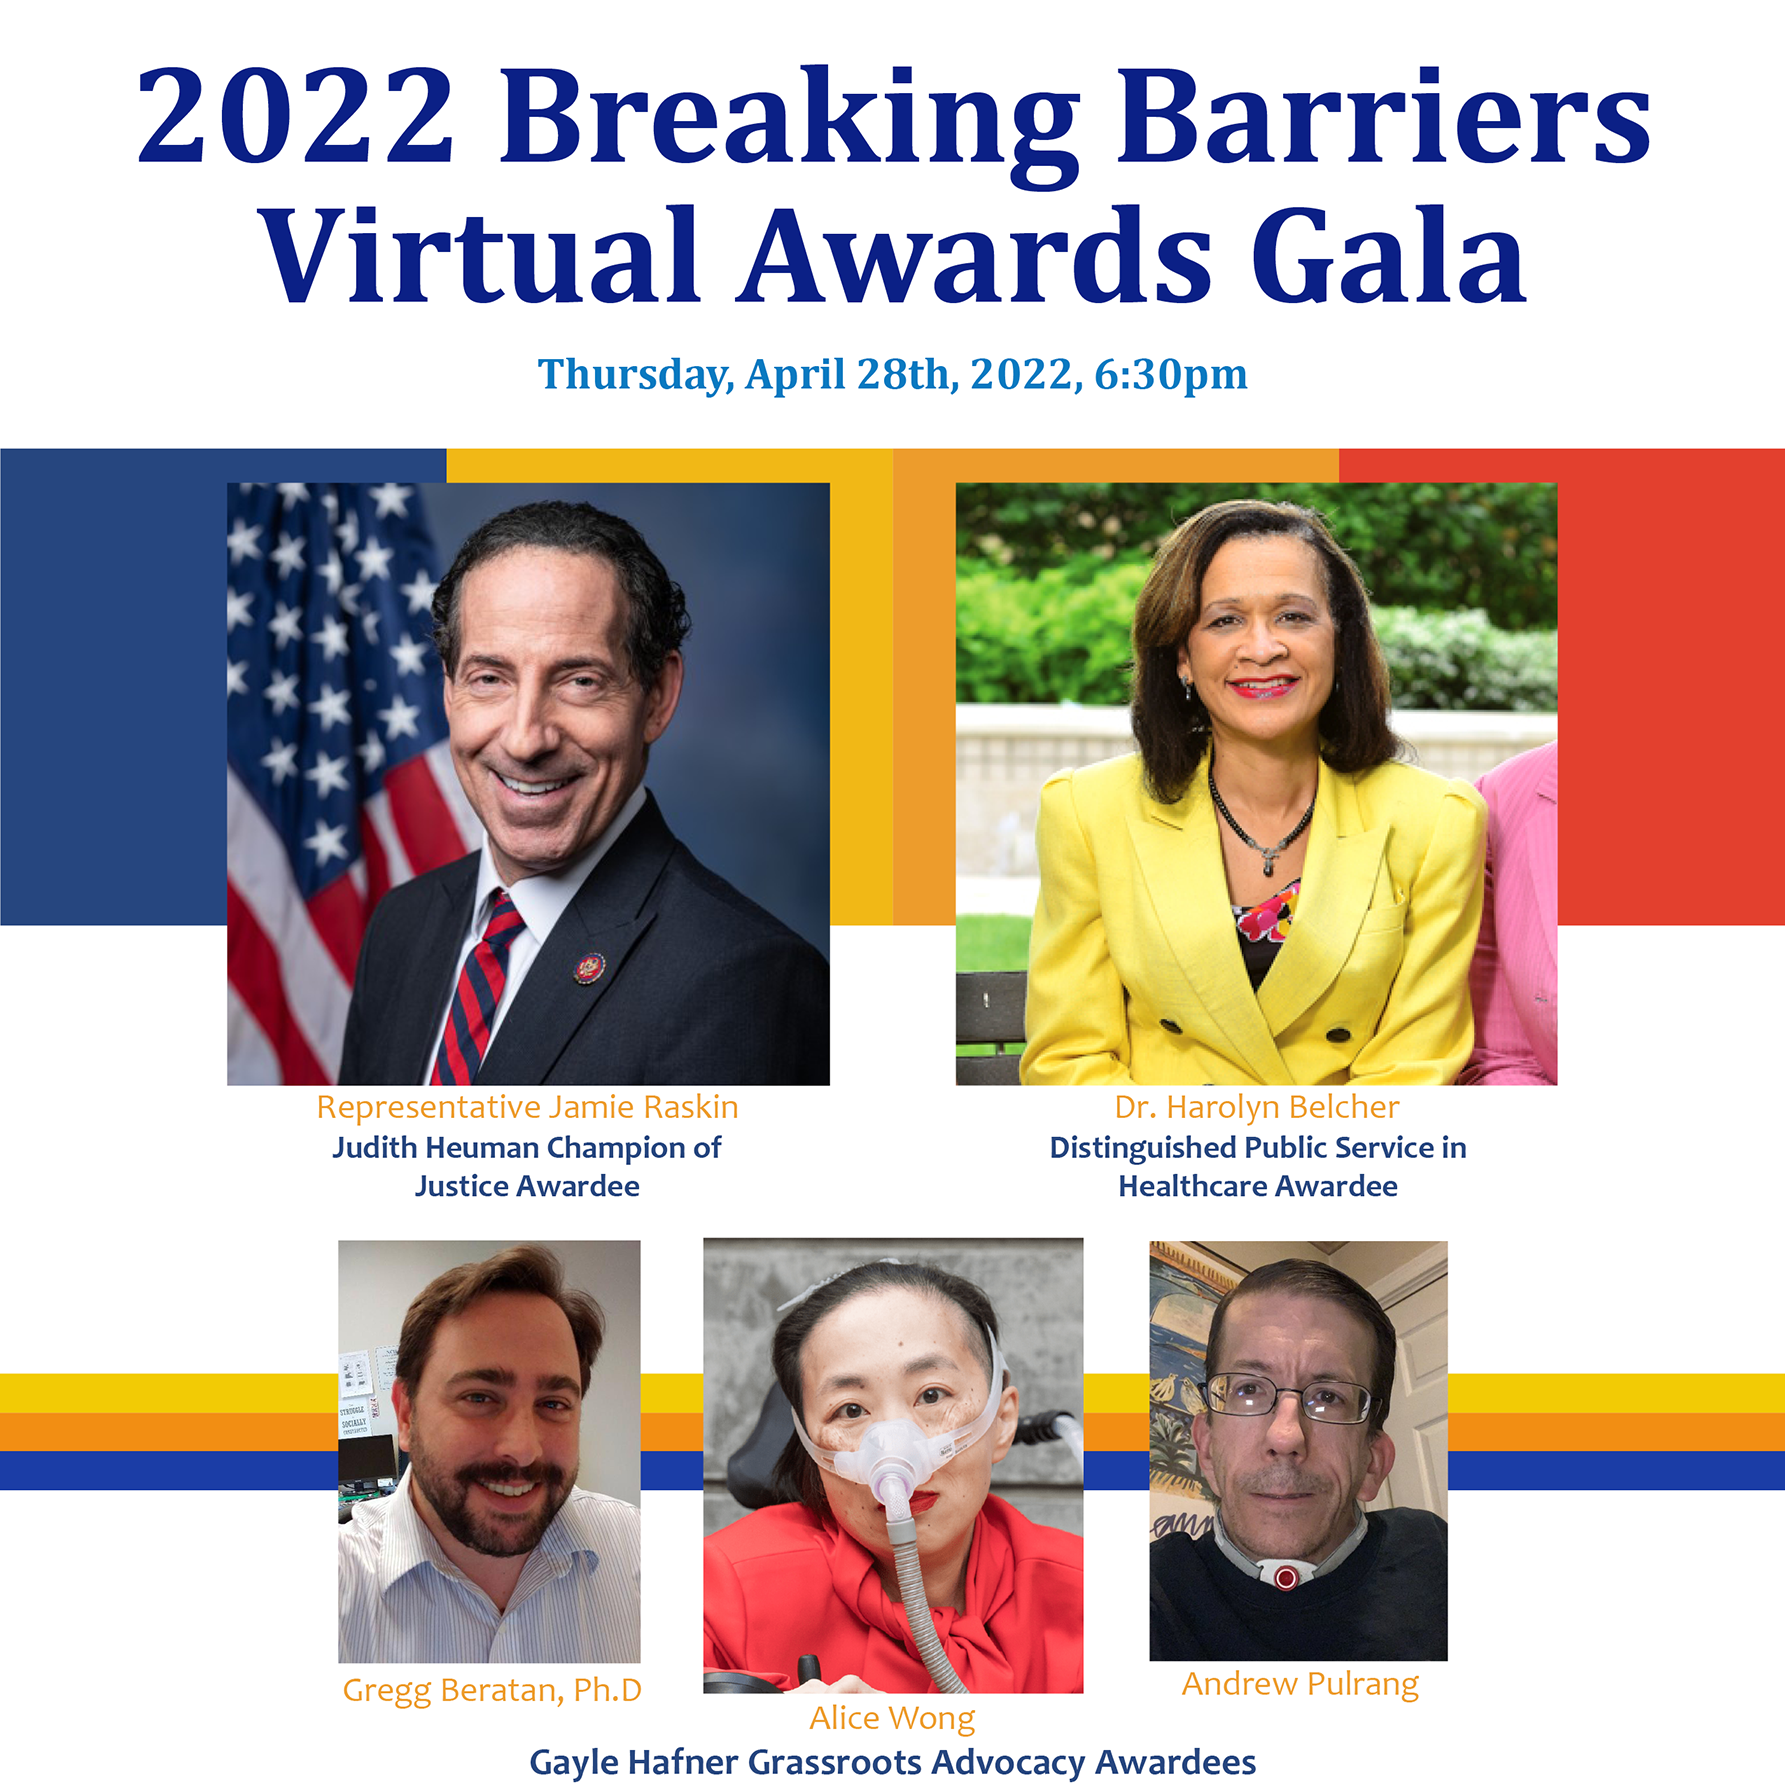 2022 Breaking Barriers Virtual Awards Gala. Thursday, April 28th, 2022, 6:30M. Images: From top left to bottom right: U.S. Rep. Jamie Raskin (Judith Heumann Champion of Justice awardee), Dr. Harolyn Belcher (Distinguished Service in Healthcare awardee), Alice Wong, Andrew Pulrang and Gregg Beratan, P.H.D (Gayle Hafner Grassroots Advocacy awardees).